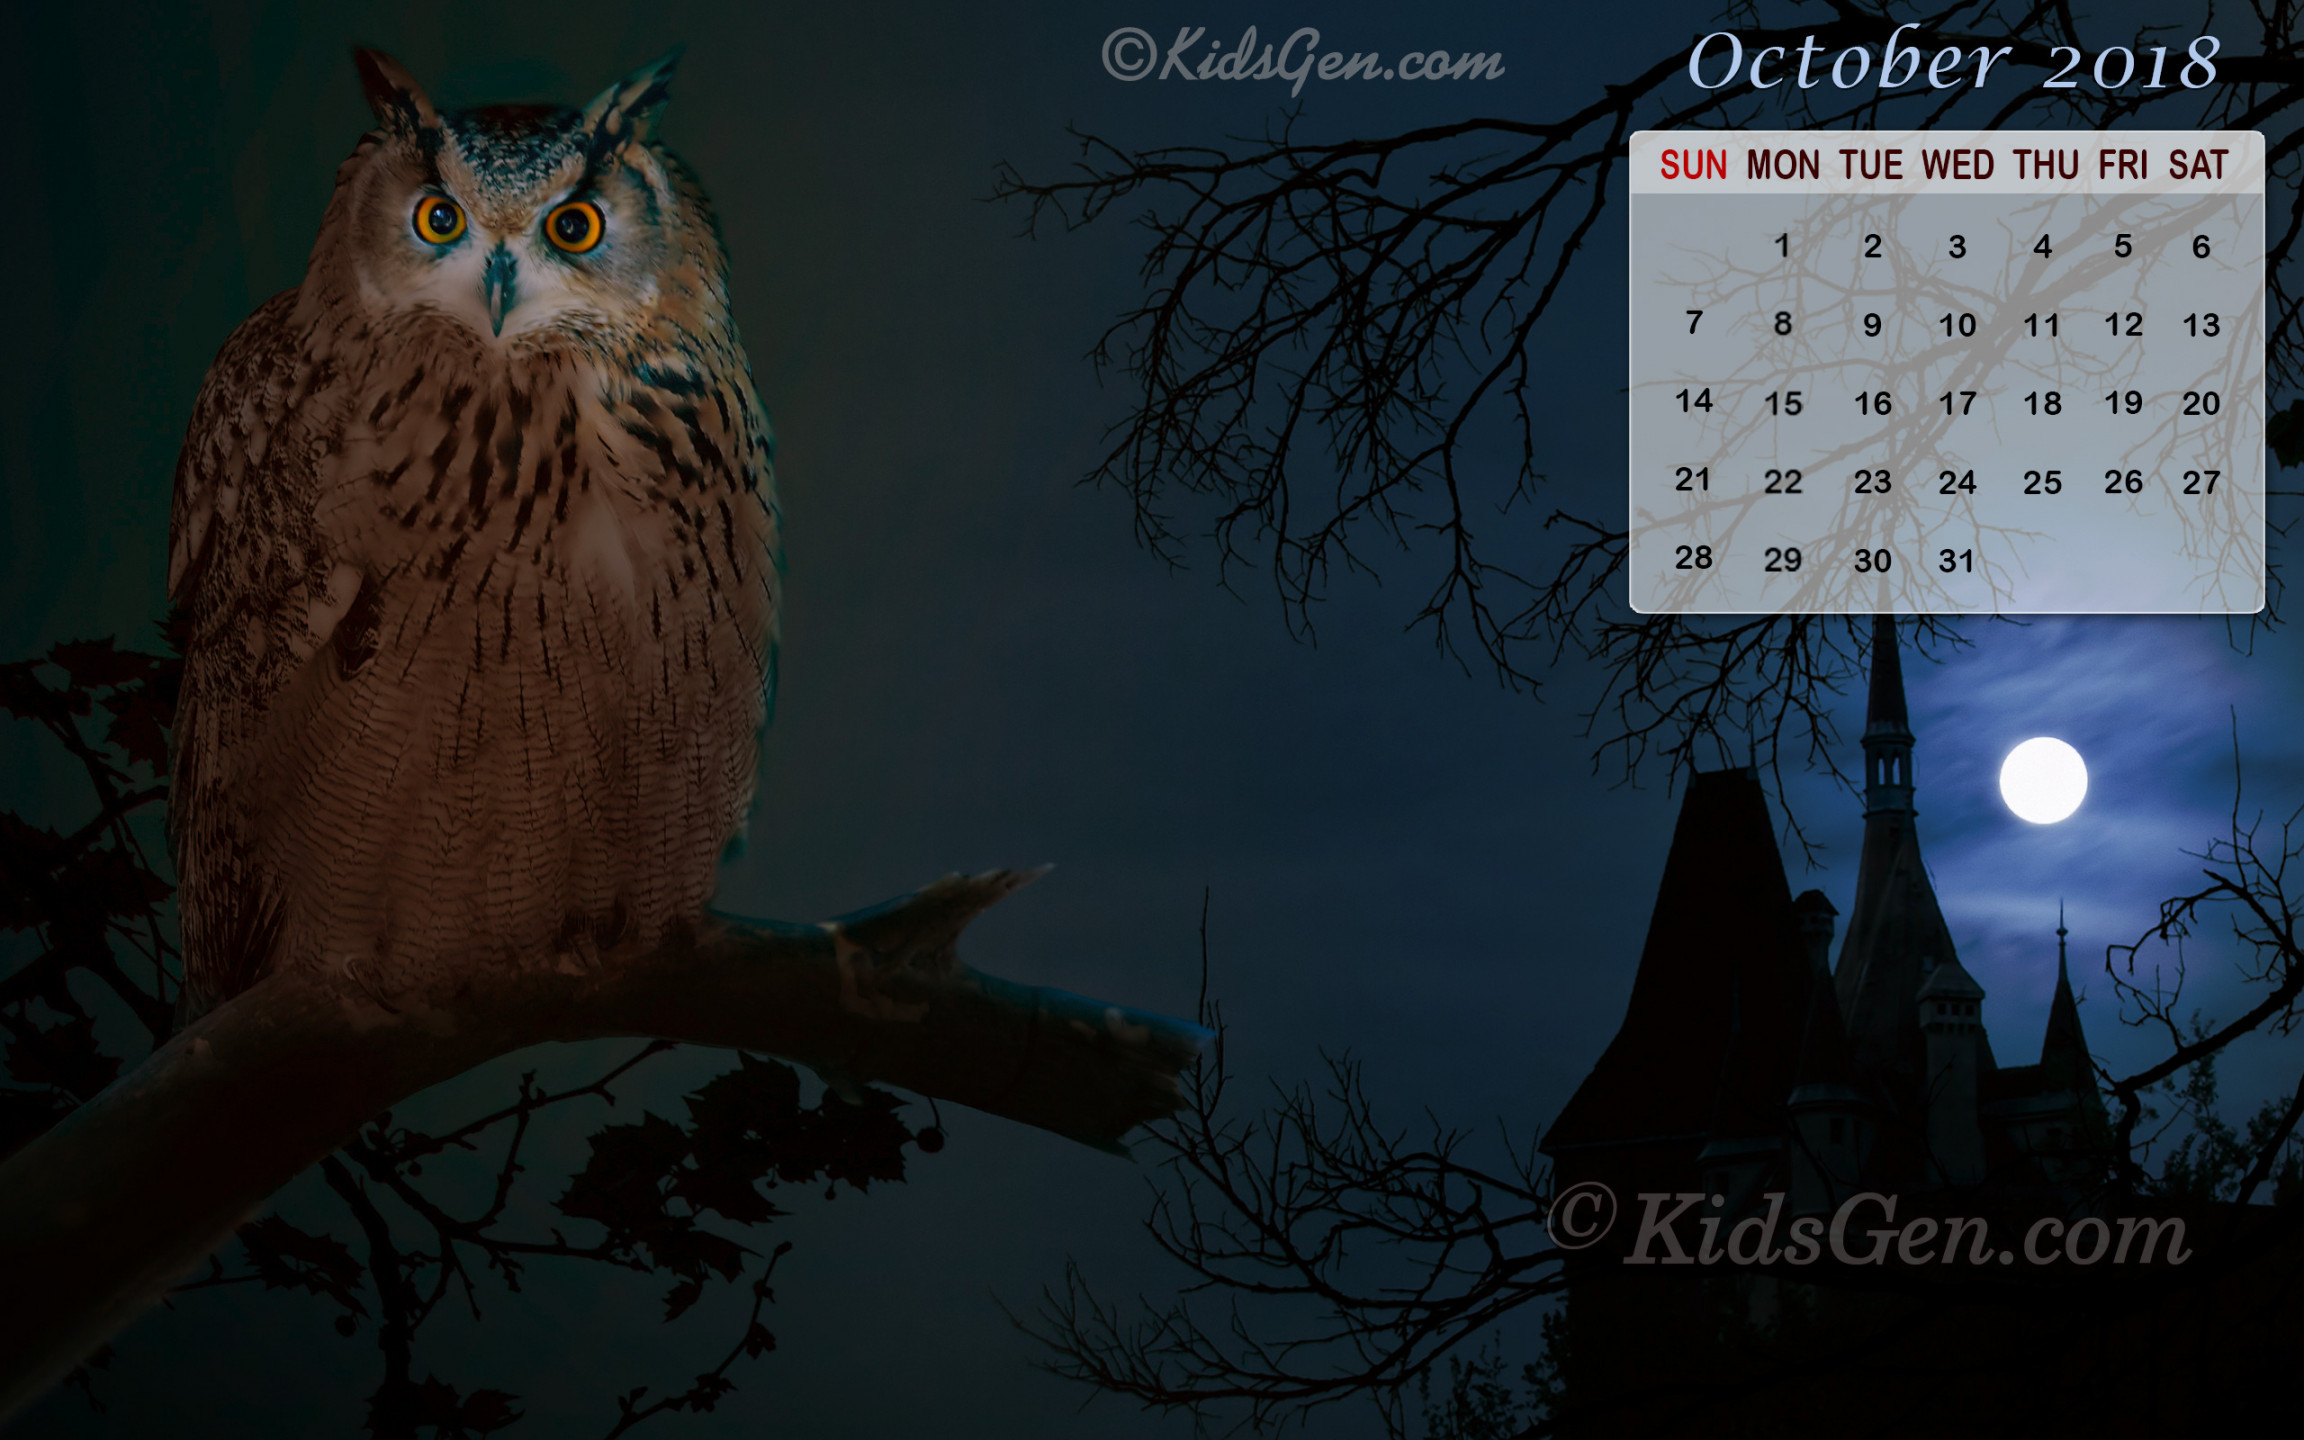 October 2018 Calendar Wallpaper · Download Or right-click the image to save or set as desktop background.